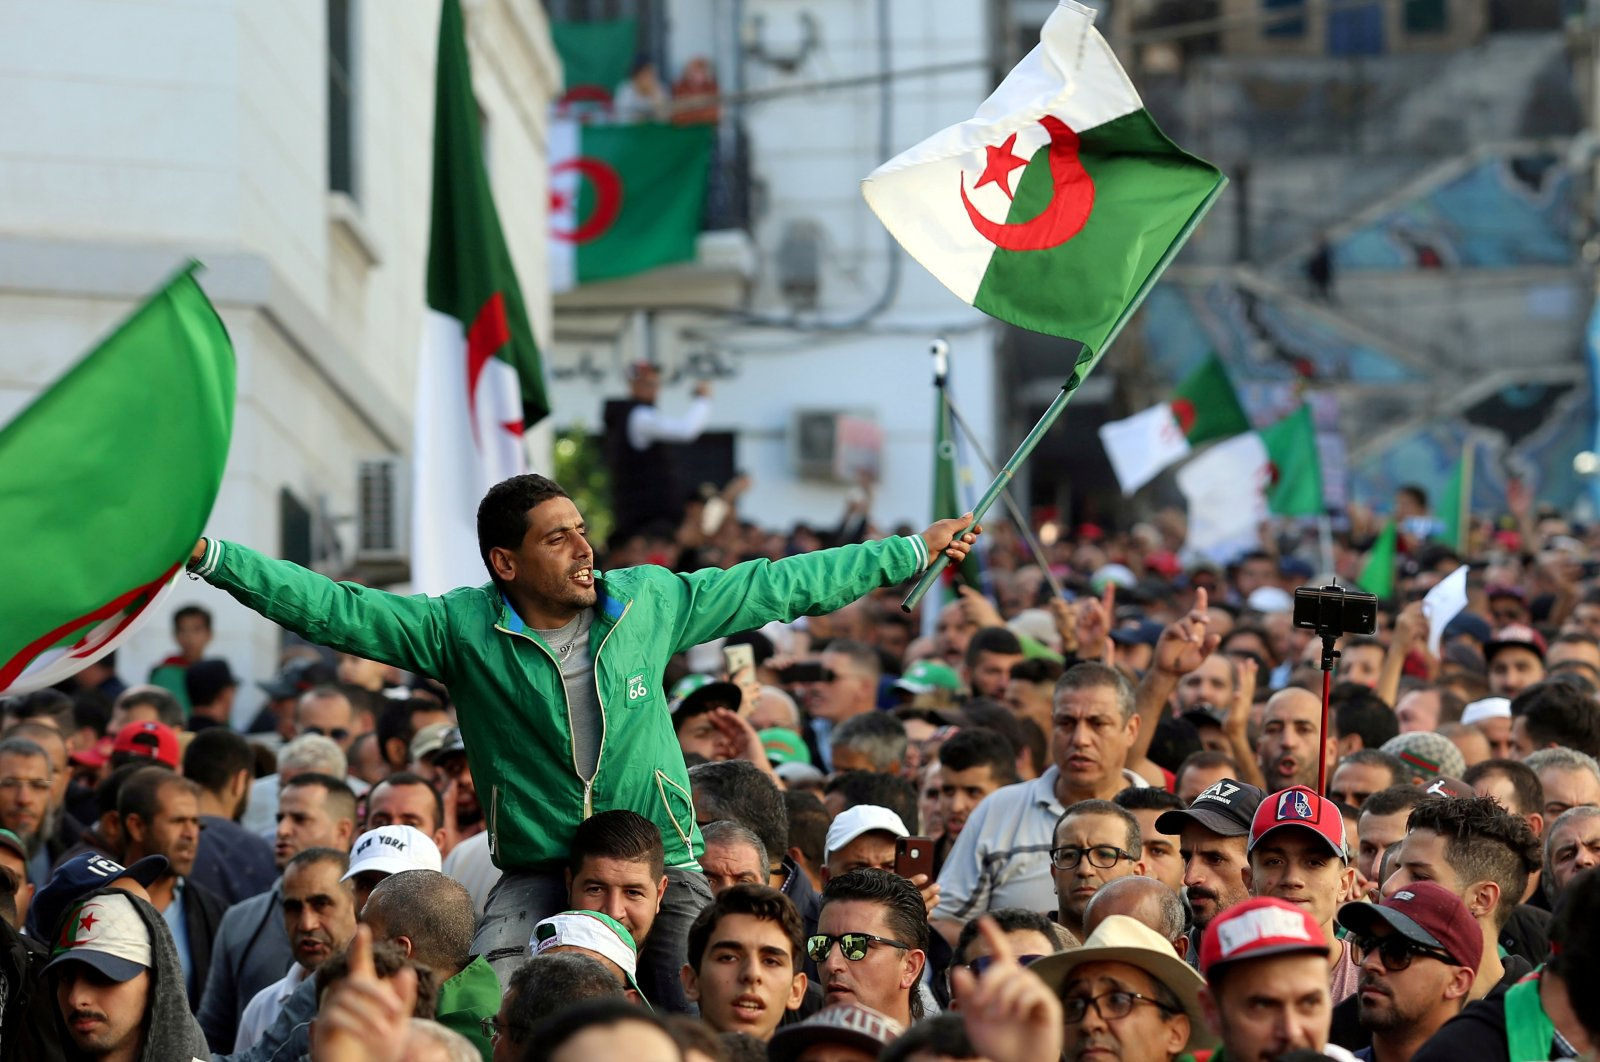 Demonstrators carry national flags during a protest in the capital Algiers, Algeria, Oct. 25, 2019. (REUTERS Photo)